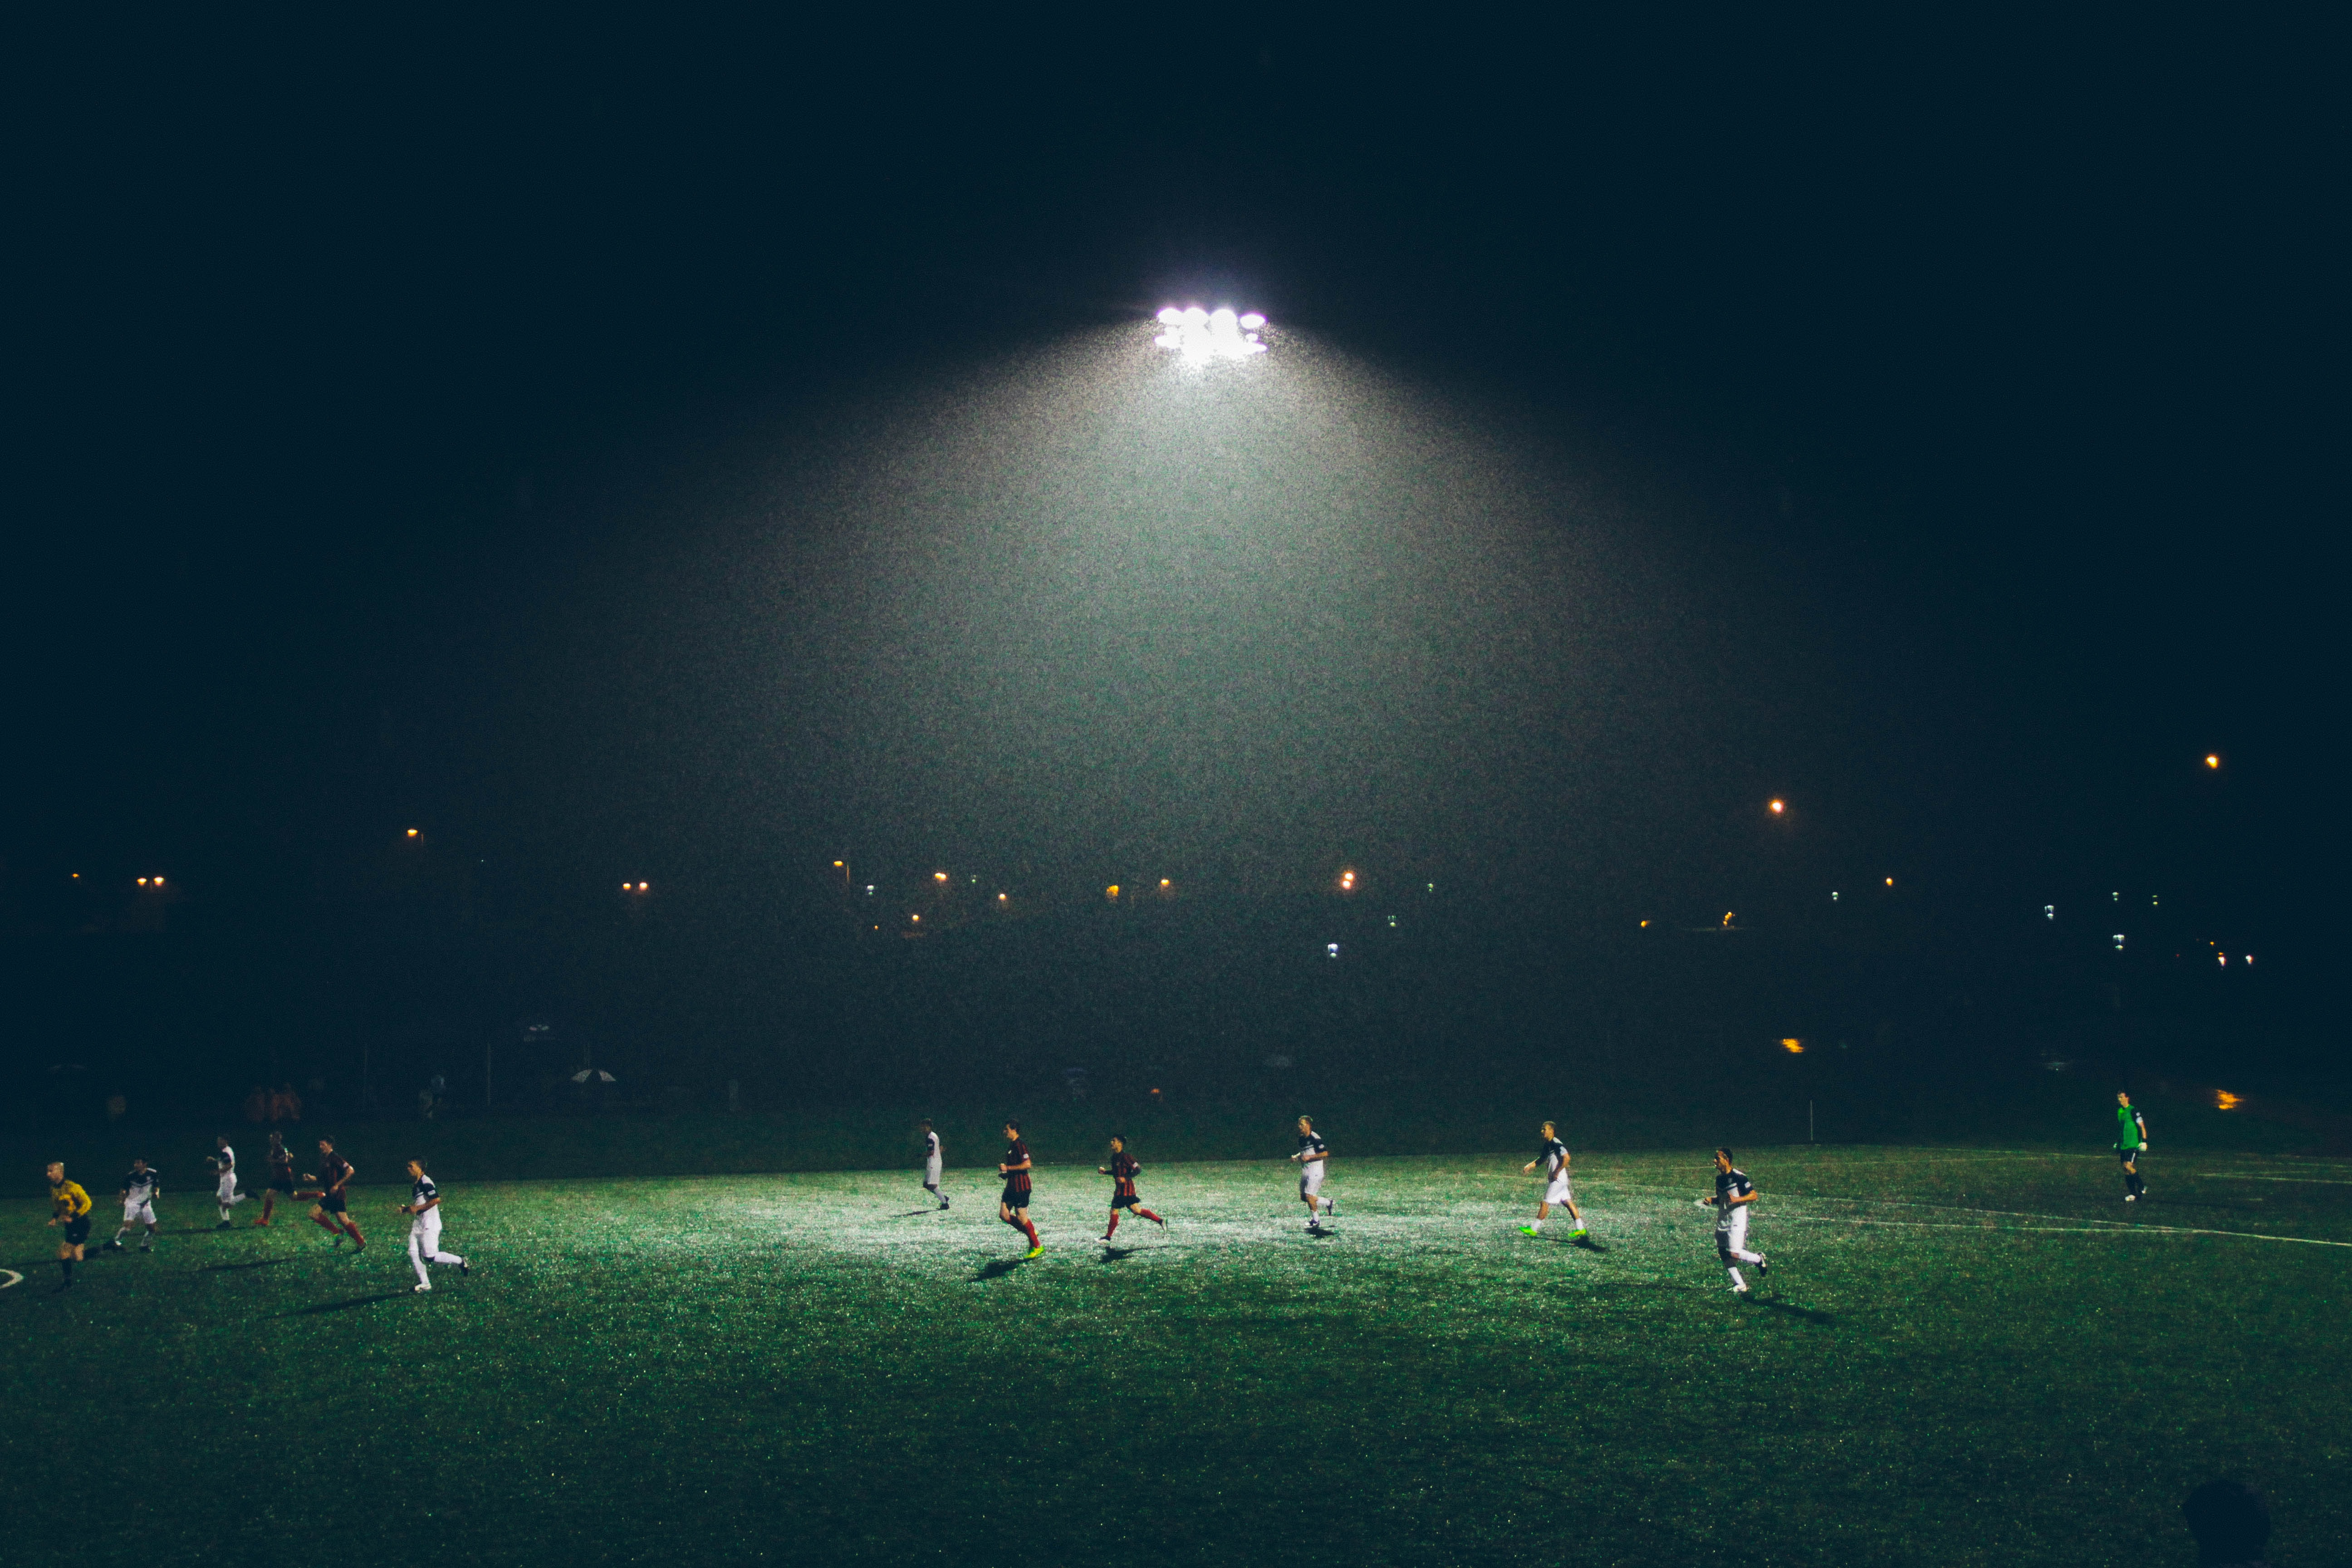 group of people playing soccer on soccer field